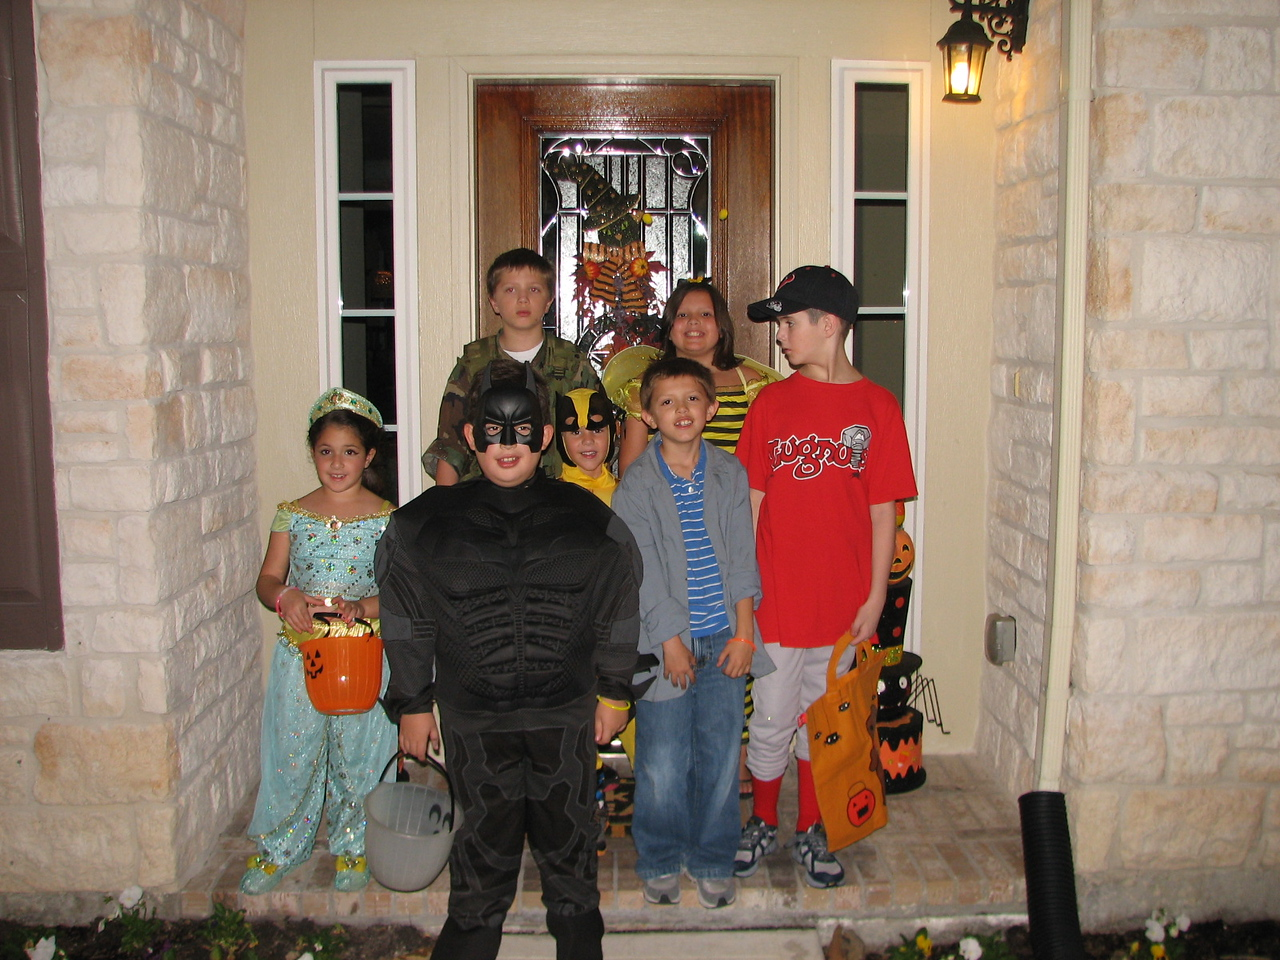 Halloween  night 2012.  With the Heisner kids and the Kaye kids.